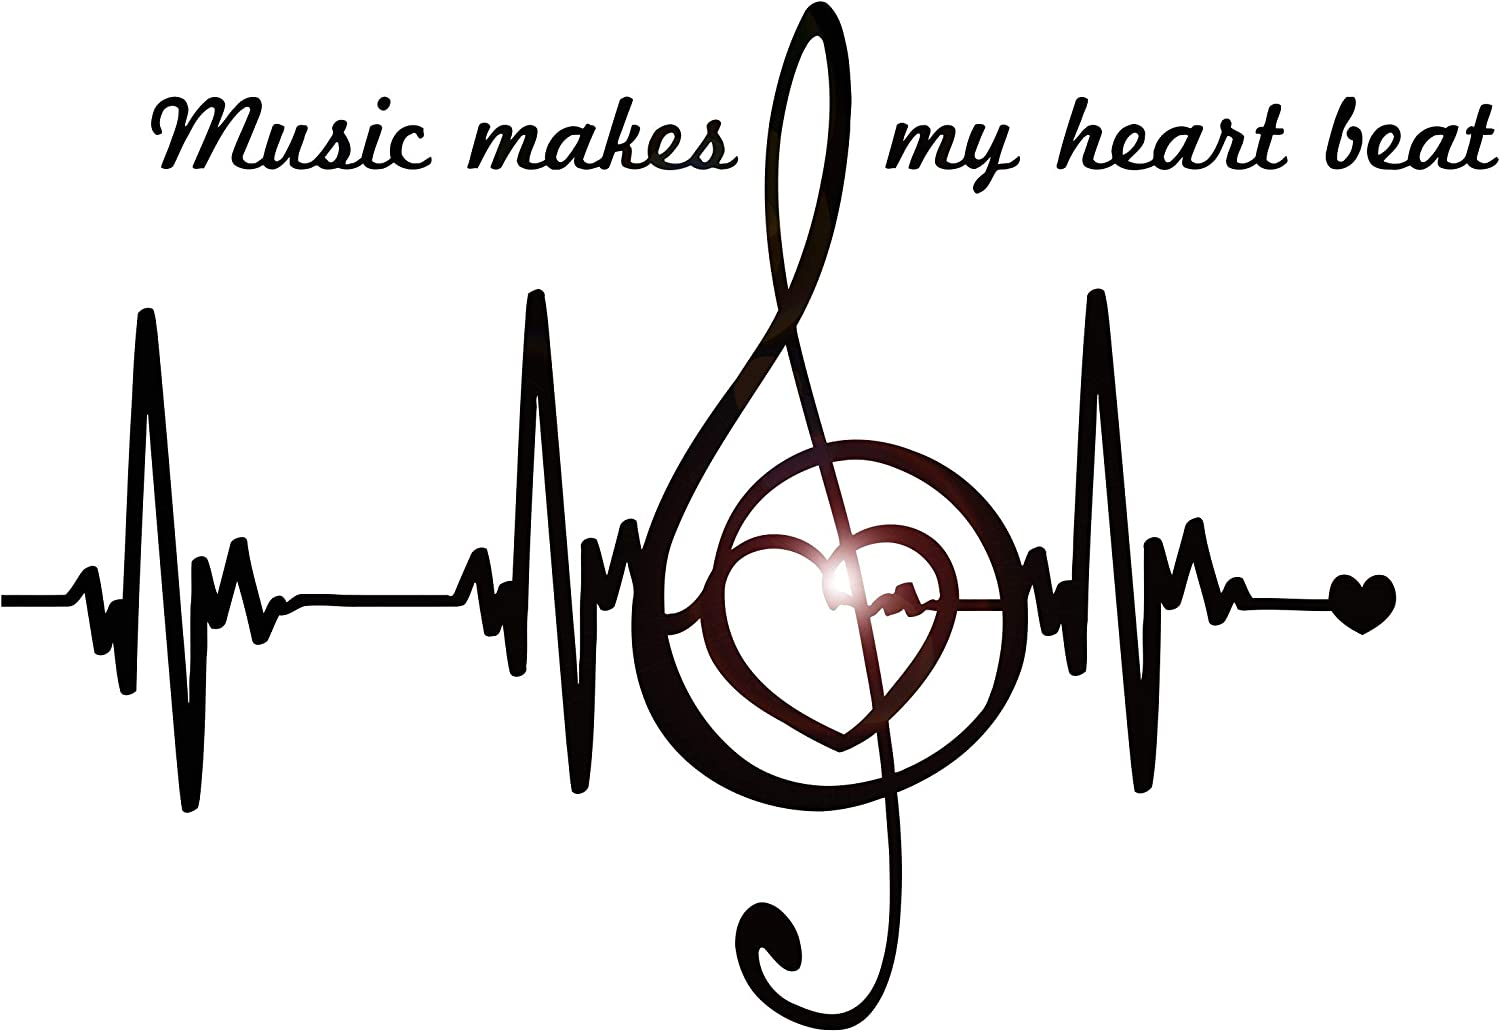 DesignToRefine Vinyl Wall Decal Music Notes Quote Heart Pulse Heartbeat Stickers Large Decor (1439ig) Black